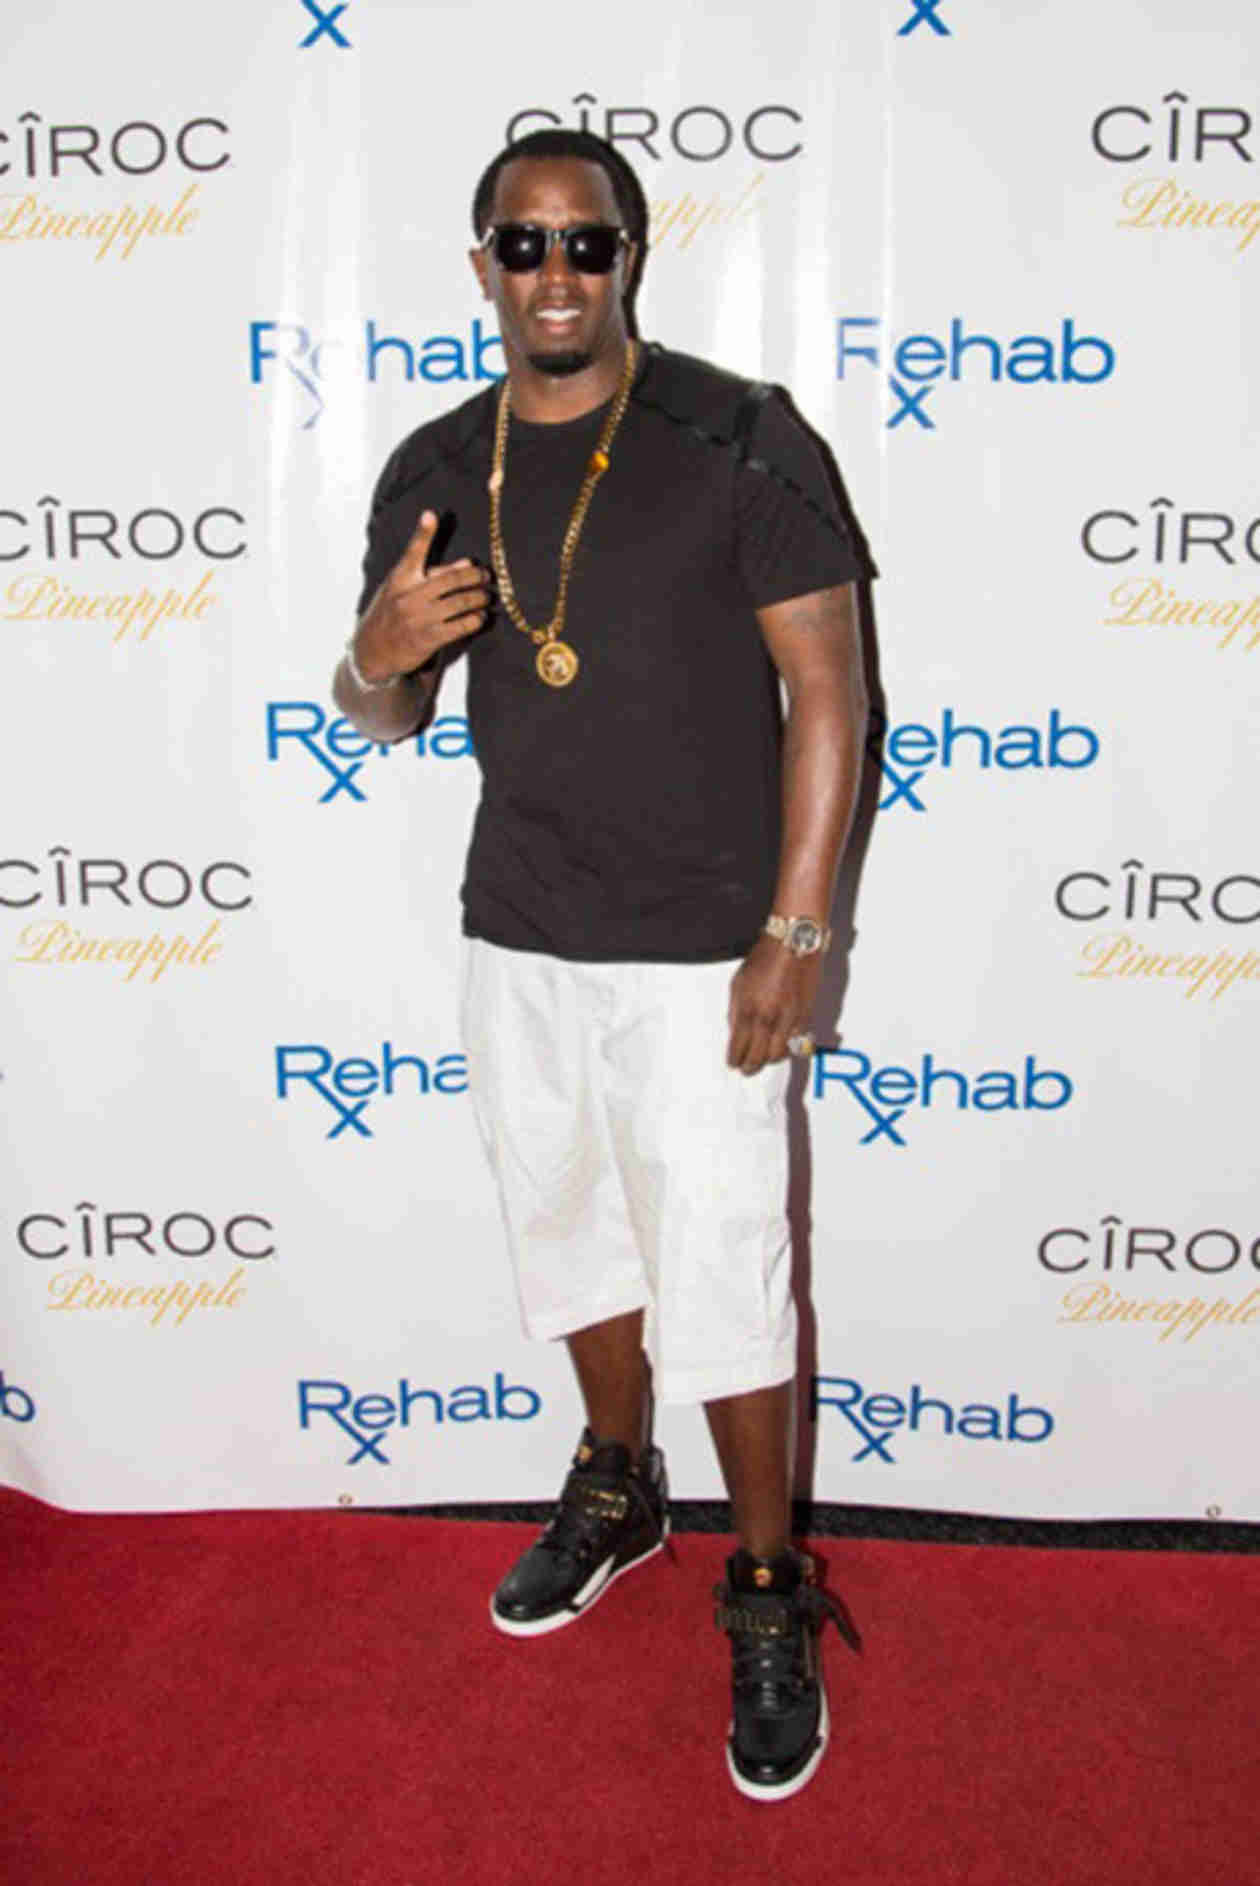 P. Diddy Parties It Up in Las Vegas For LDW — What Was He Celebrating?